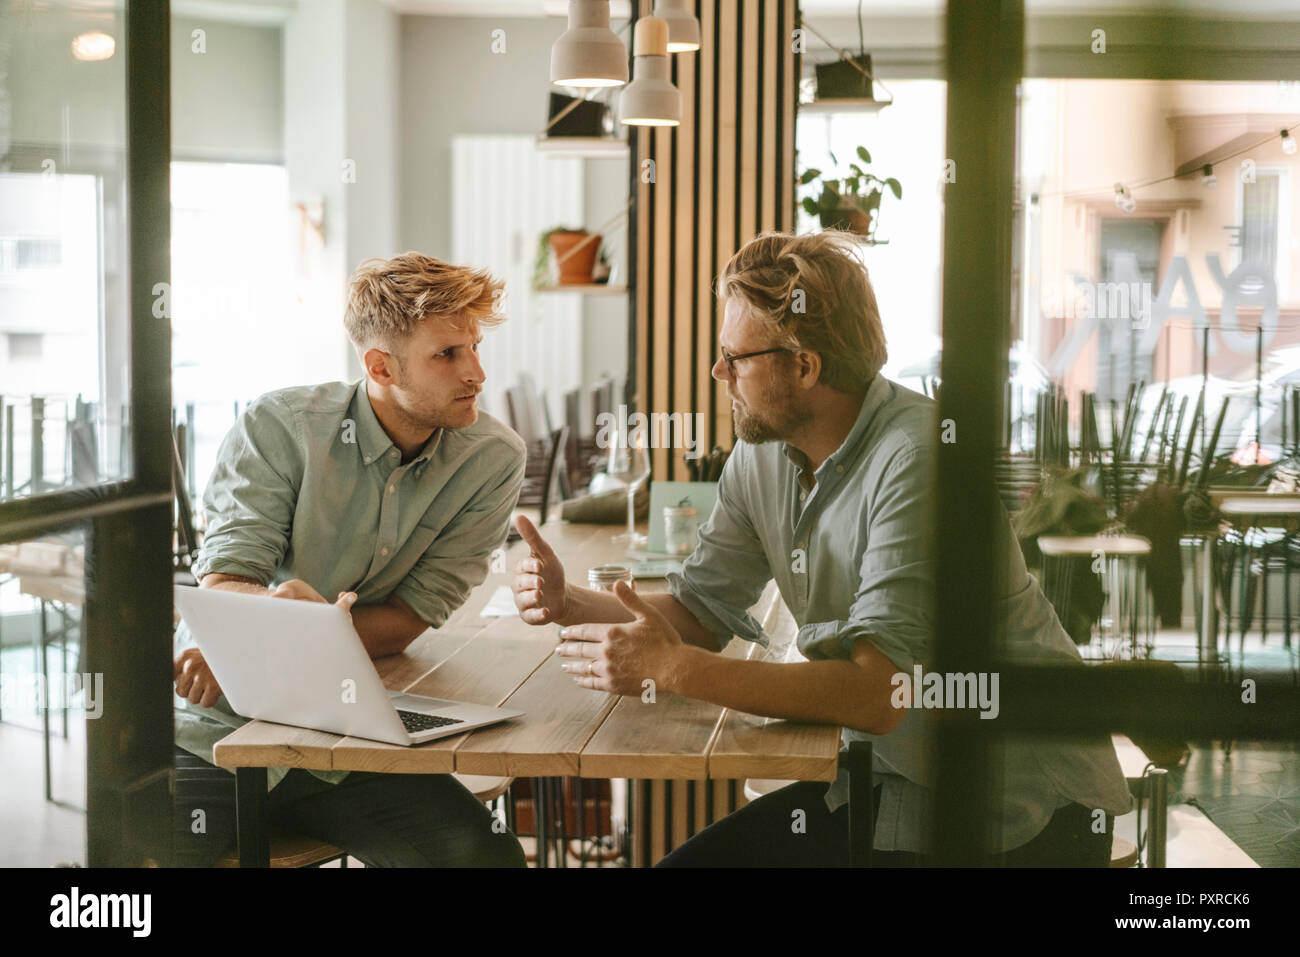 Business partners having a meeting in their new start-up company - Stock Image